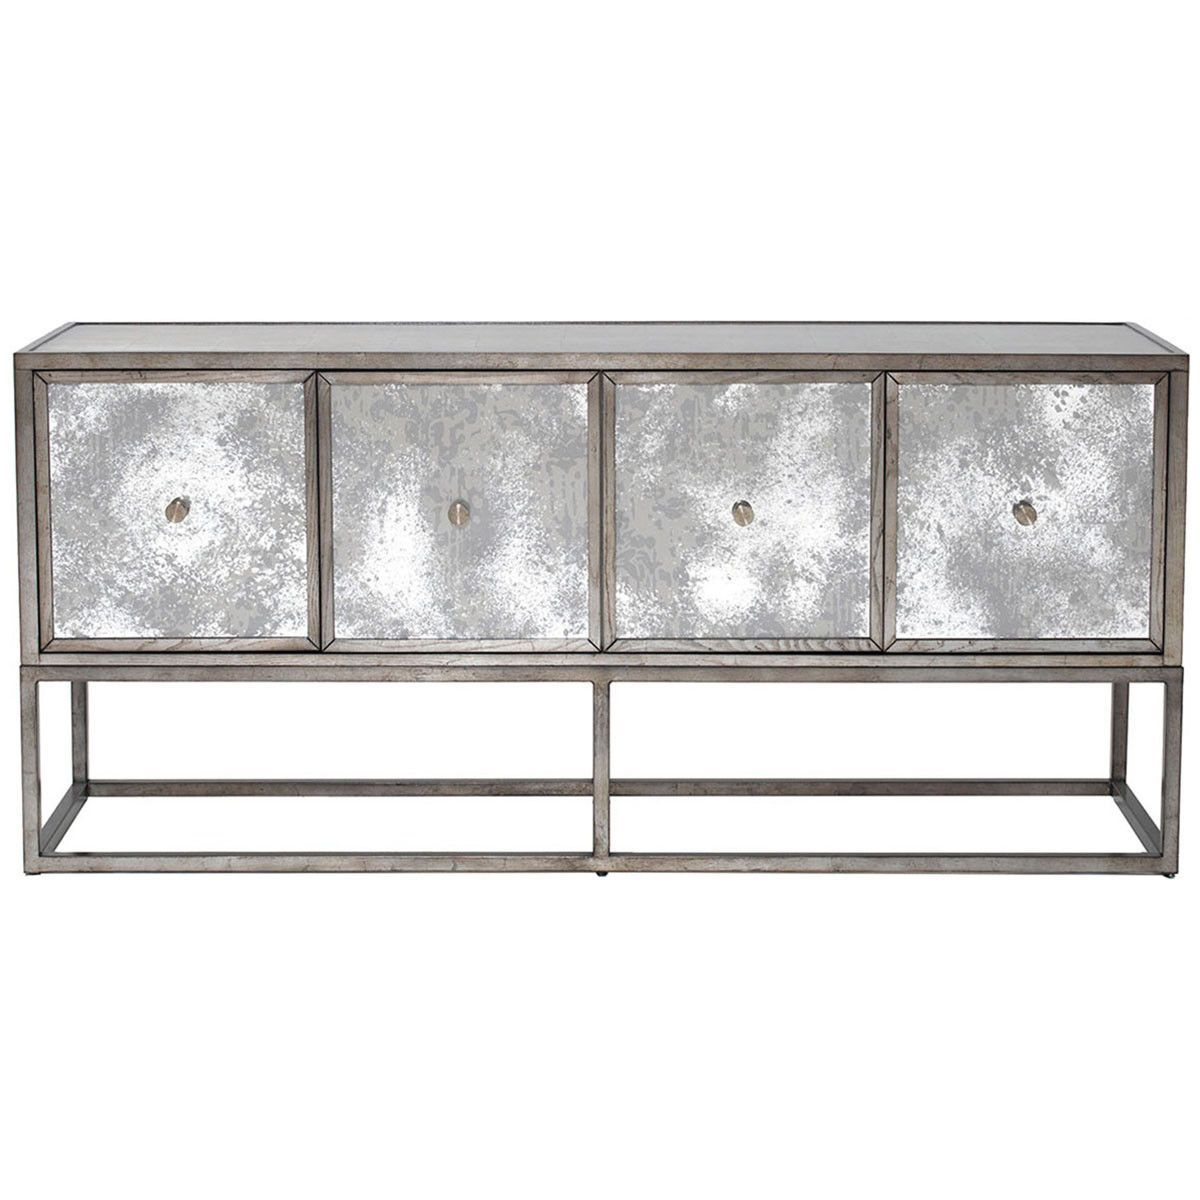 Shop For Vanguard Madison Console Table, And Other Living Room Tables At Hickory  Furniture Mart In Hickory, NC. Finish: Make It Yours Multi Surface   Mink  ...